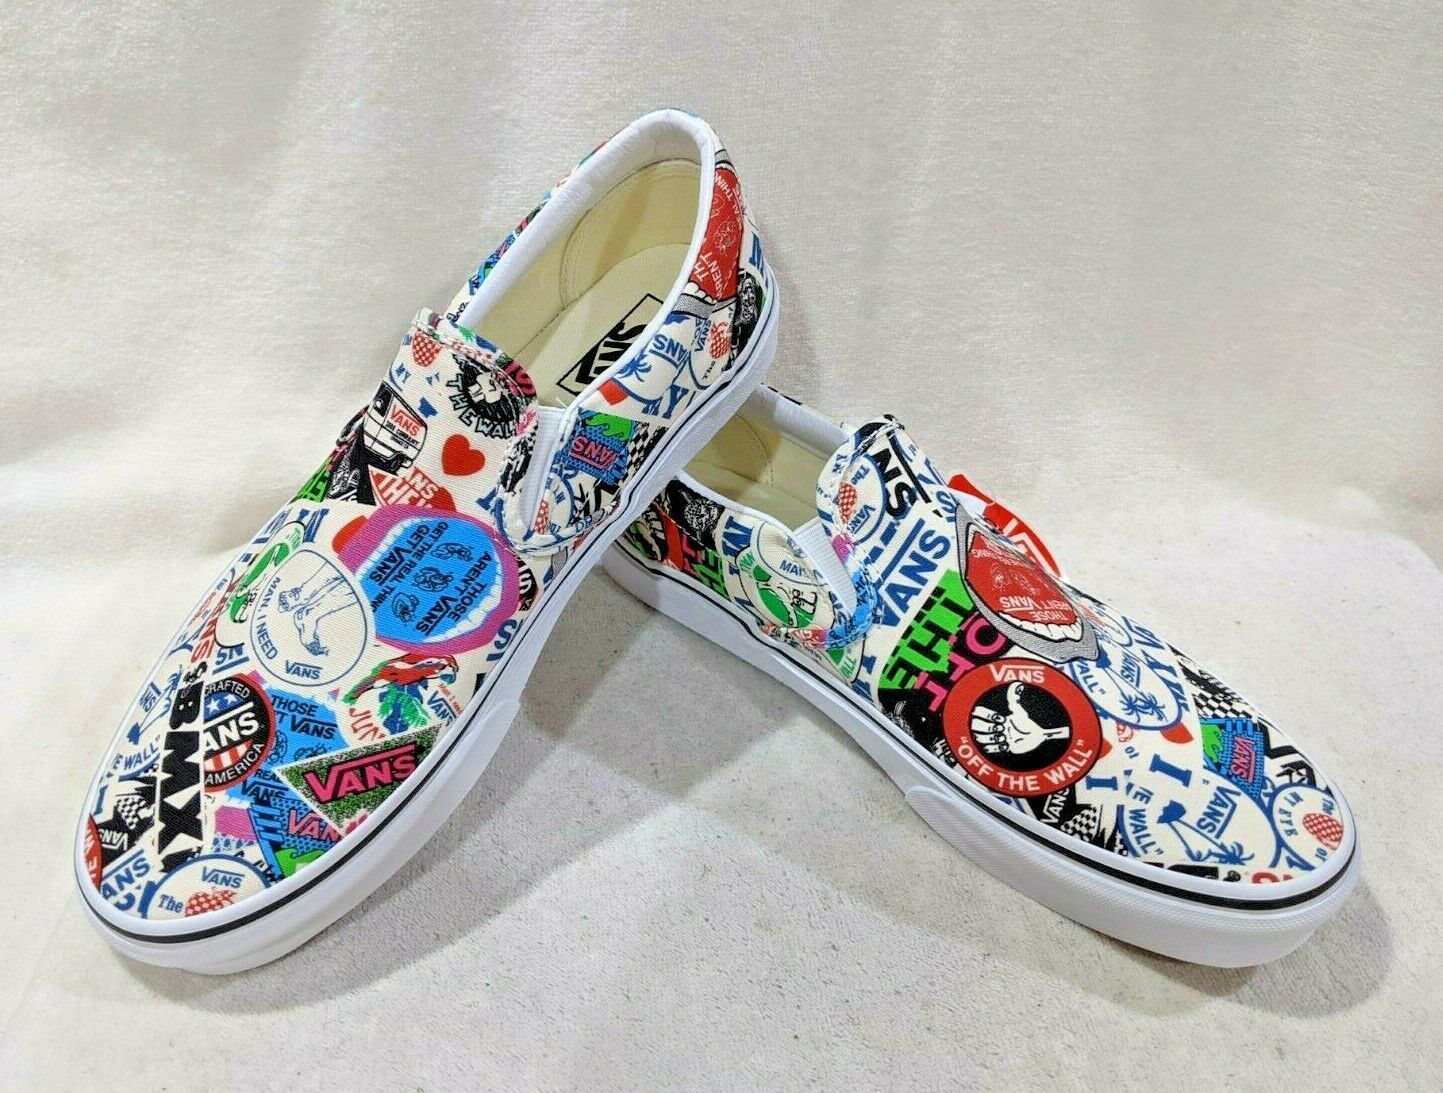 Vans Unisex Classic Mash Up Stickers Multicolor Slip On Shoes Assorted Sizes Nwb In 2020 Slip On Shoes Vans Shoes For Sale On Shoes